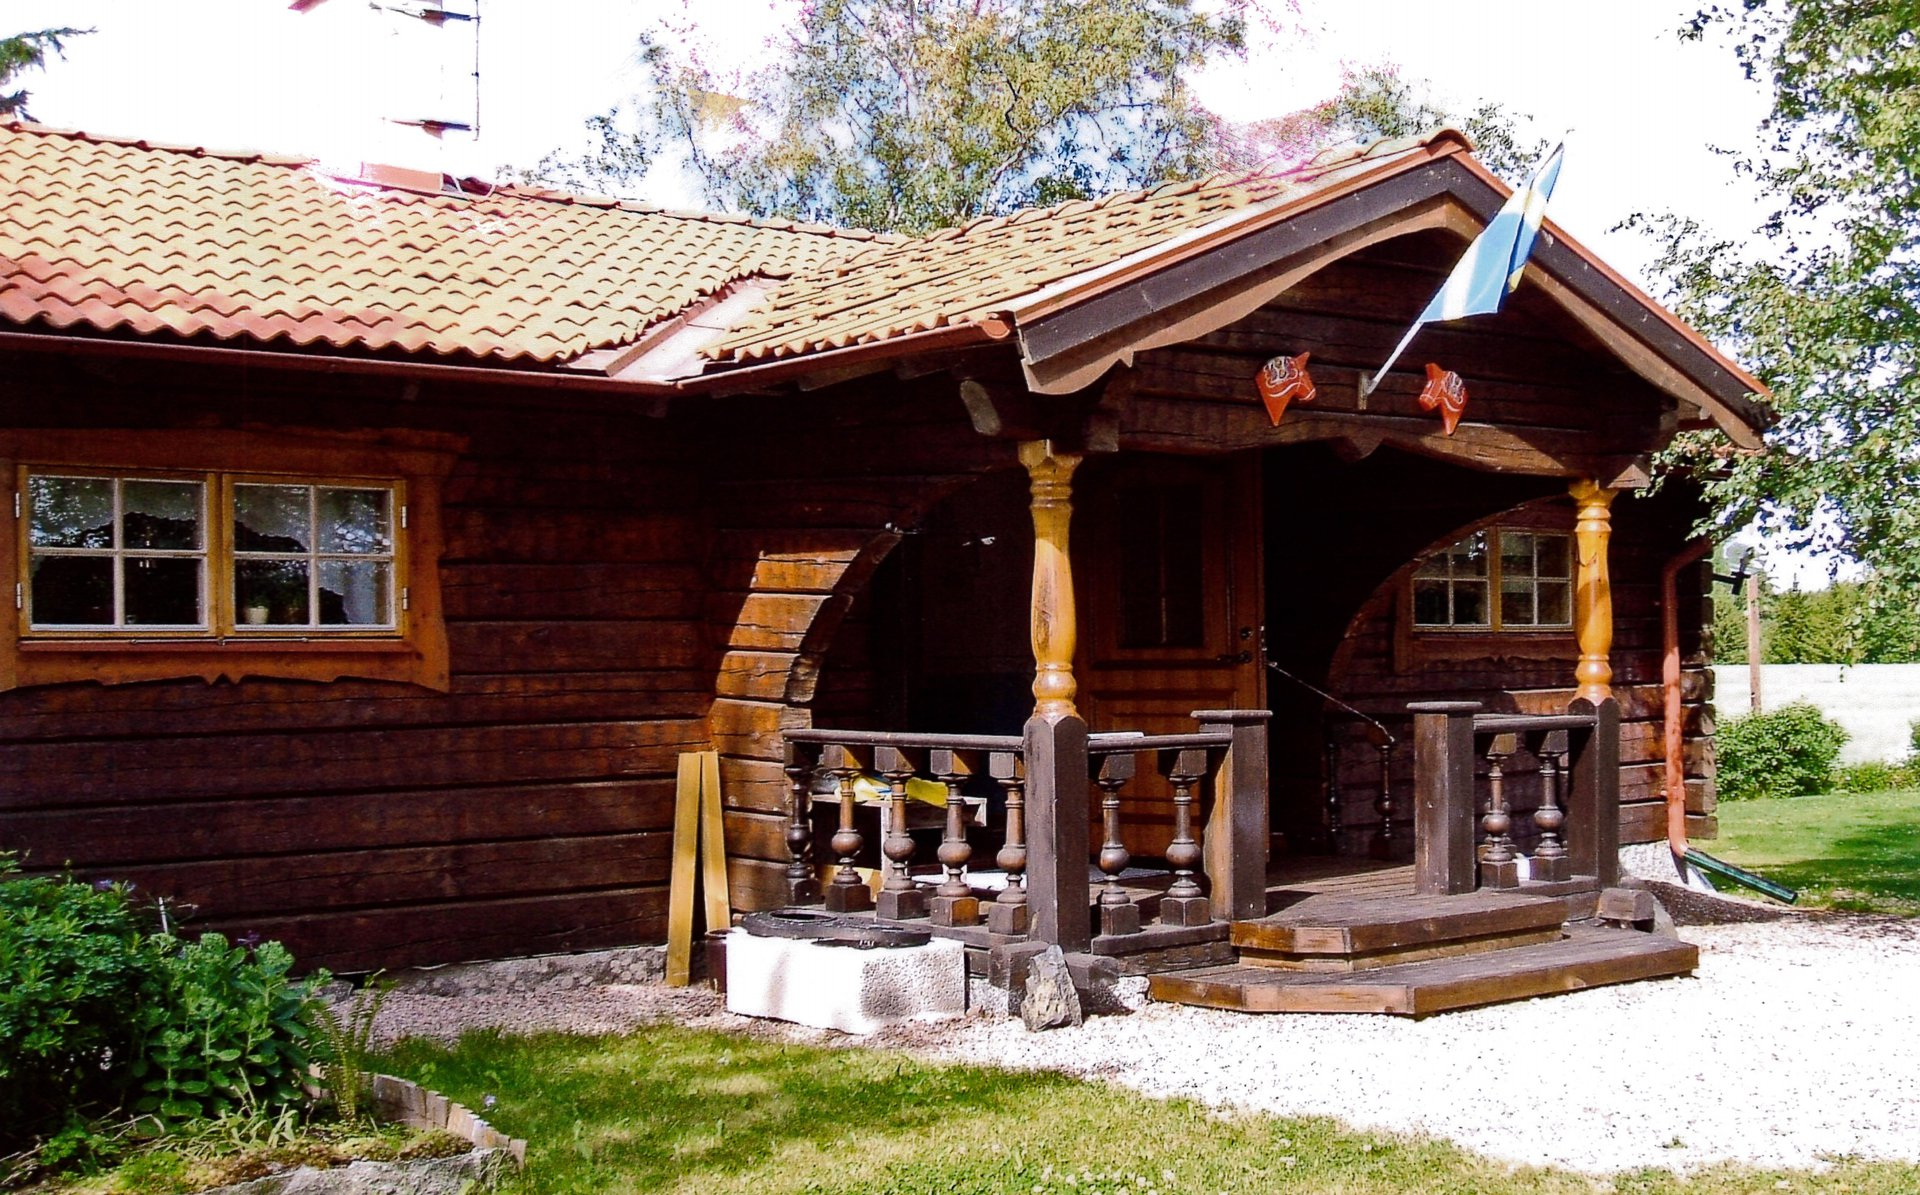 61 sq mt wooden house cottage country from sweden (1)